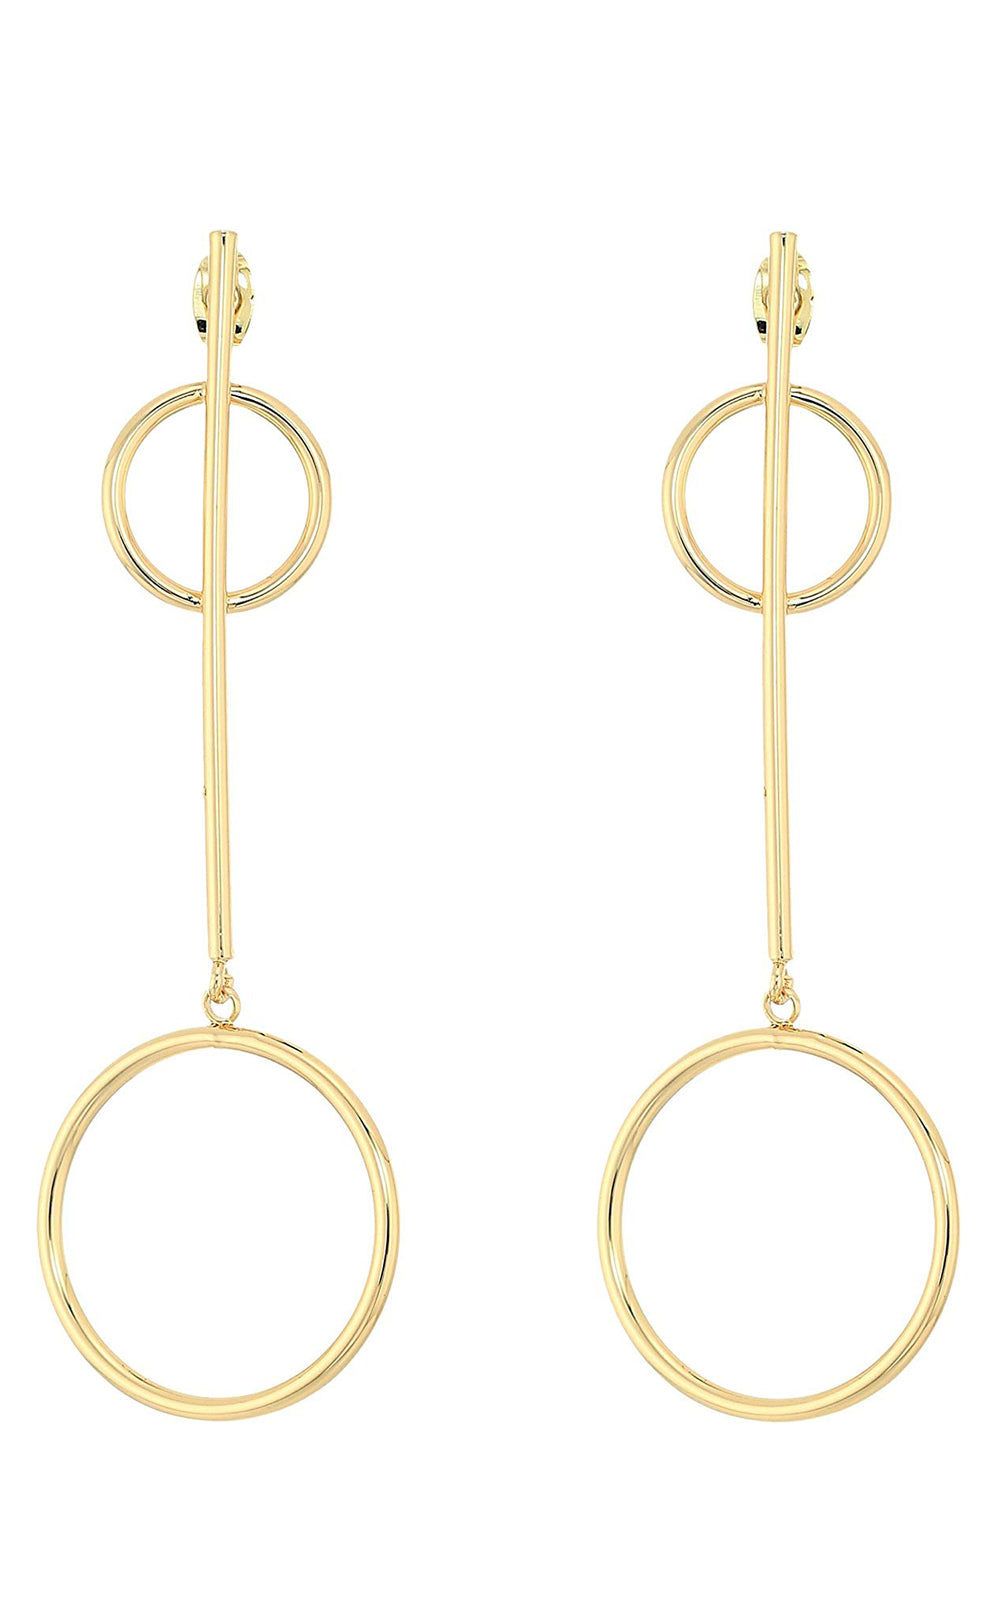 Shashi Khloe 18k Gold Plated Circle Dangle Earrings